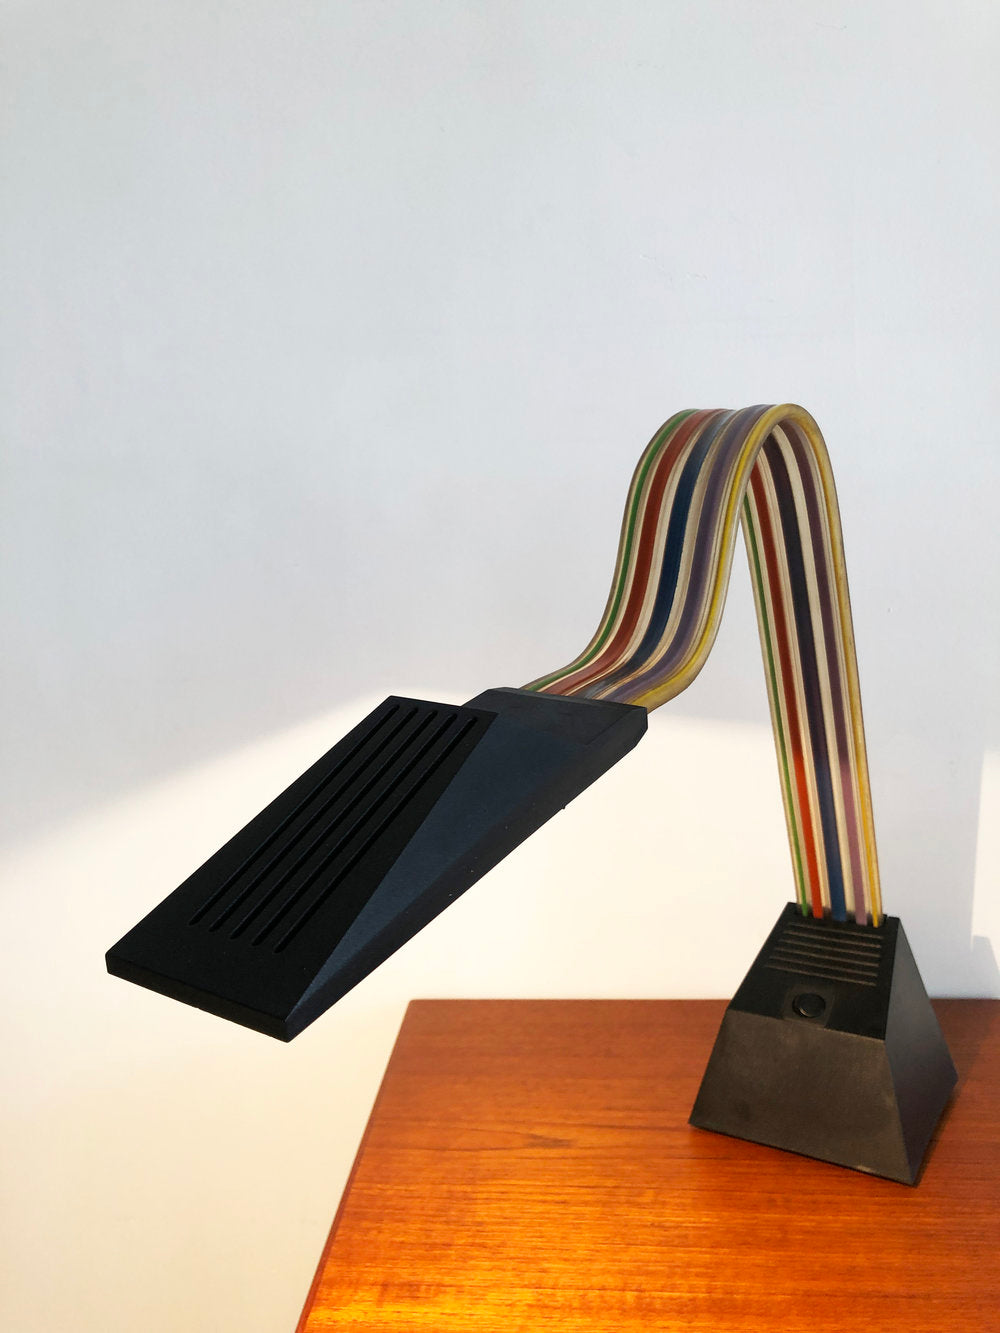 1983 Nastro Table Lamp by Alberto Fraser for Stilnovo, Italy